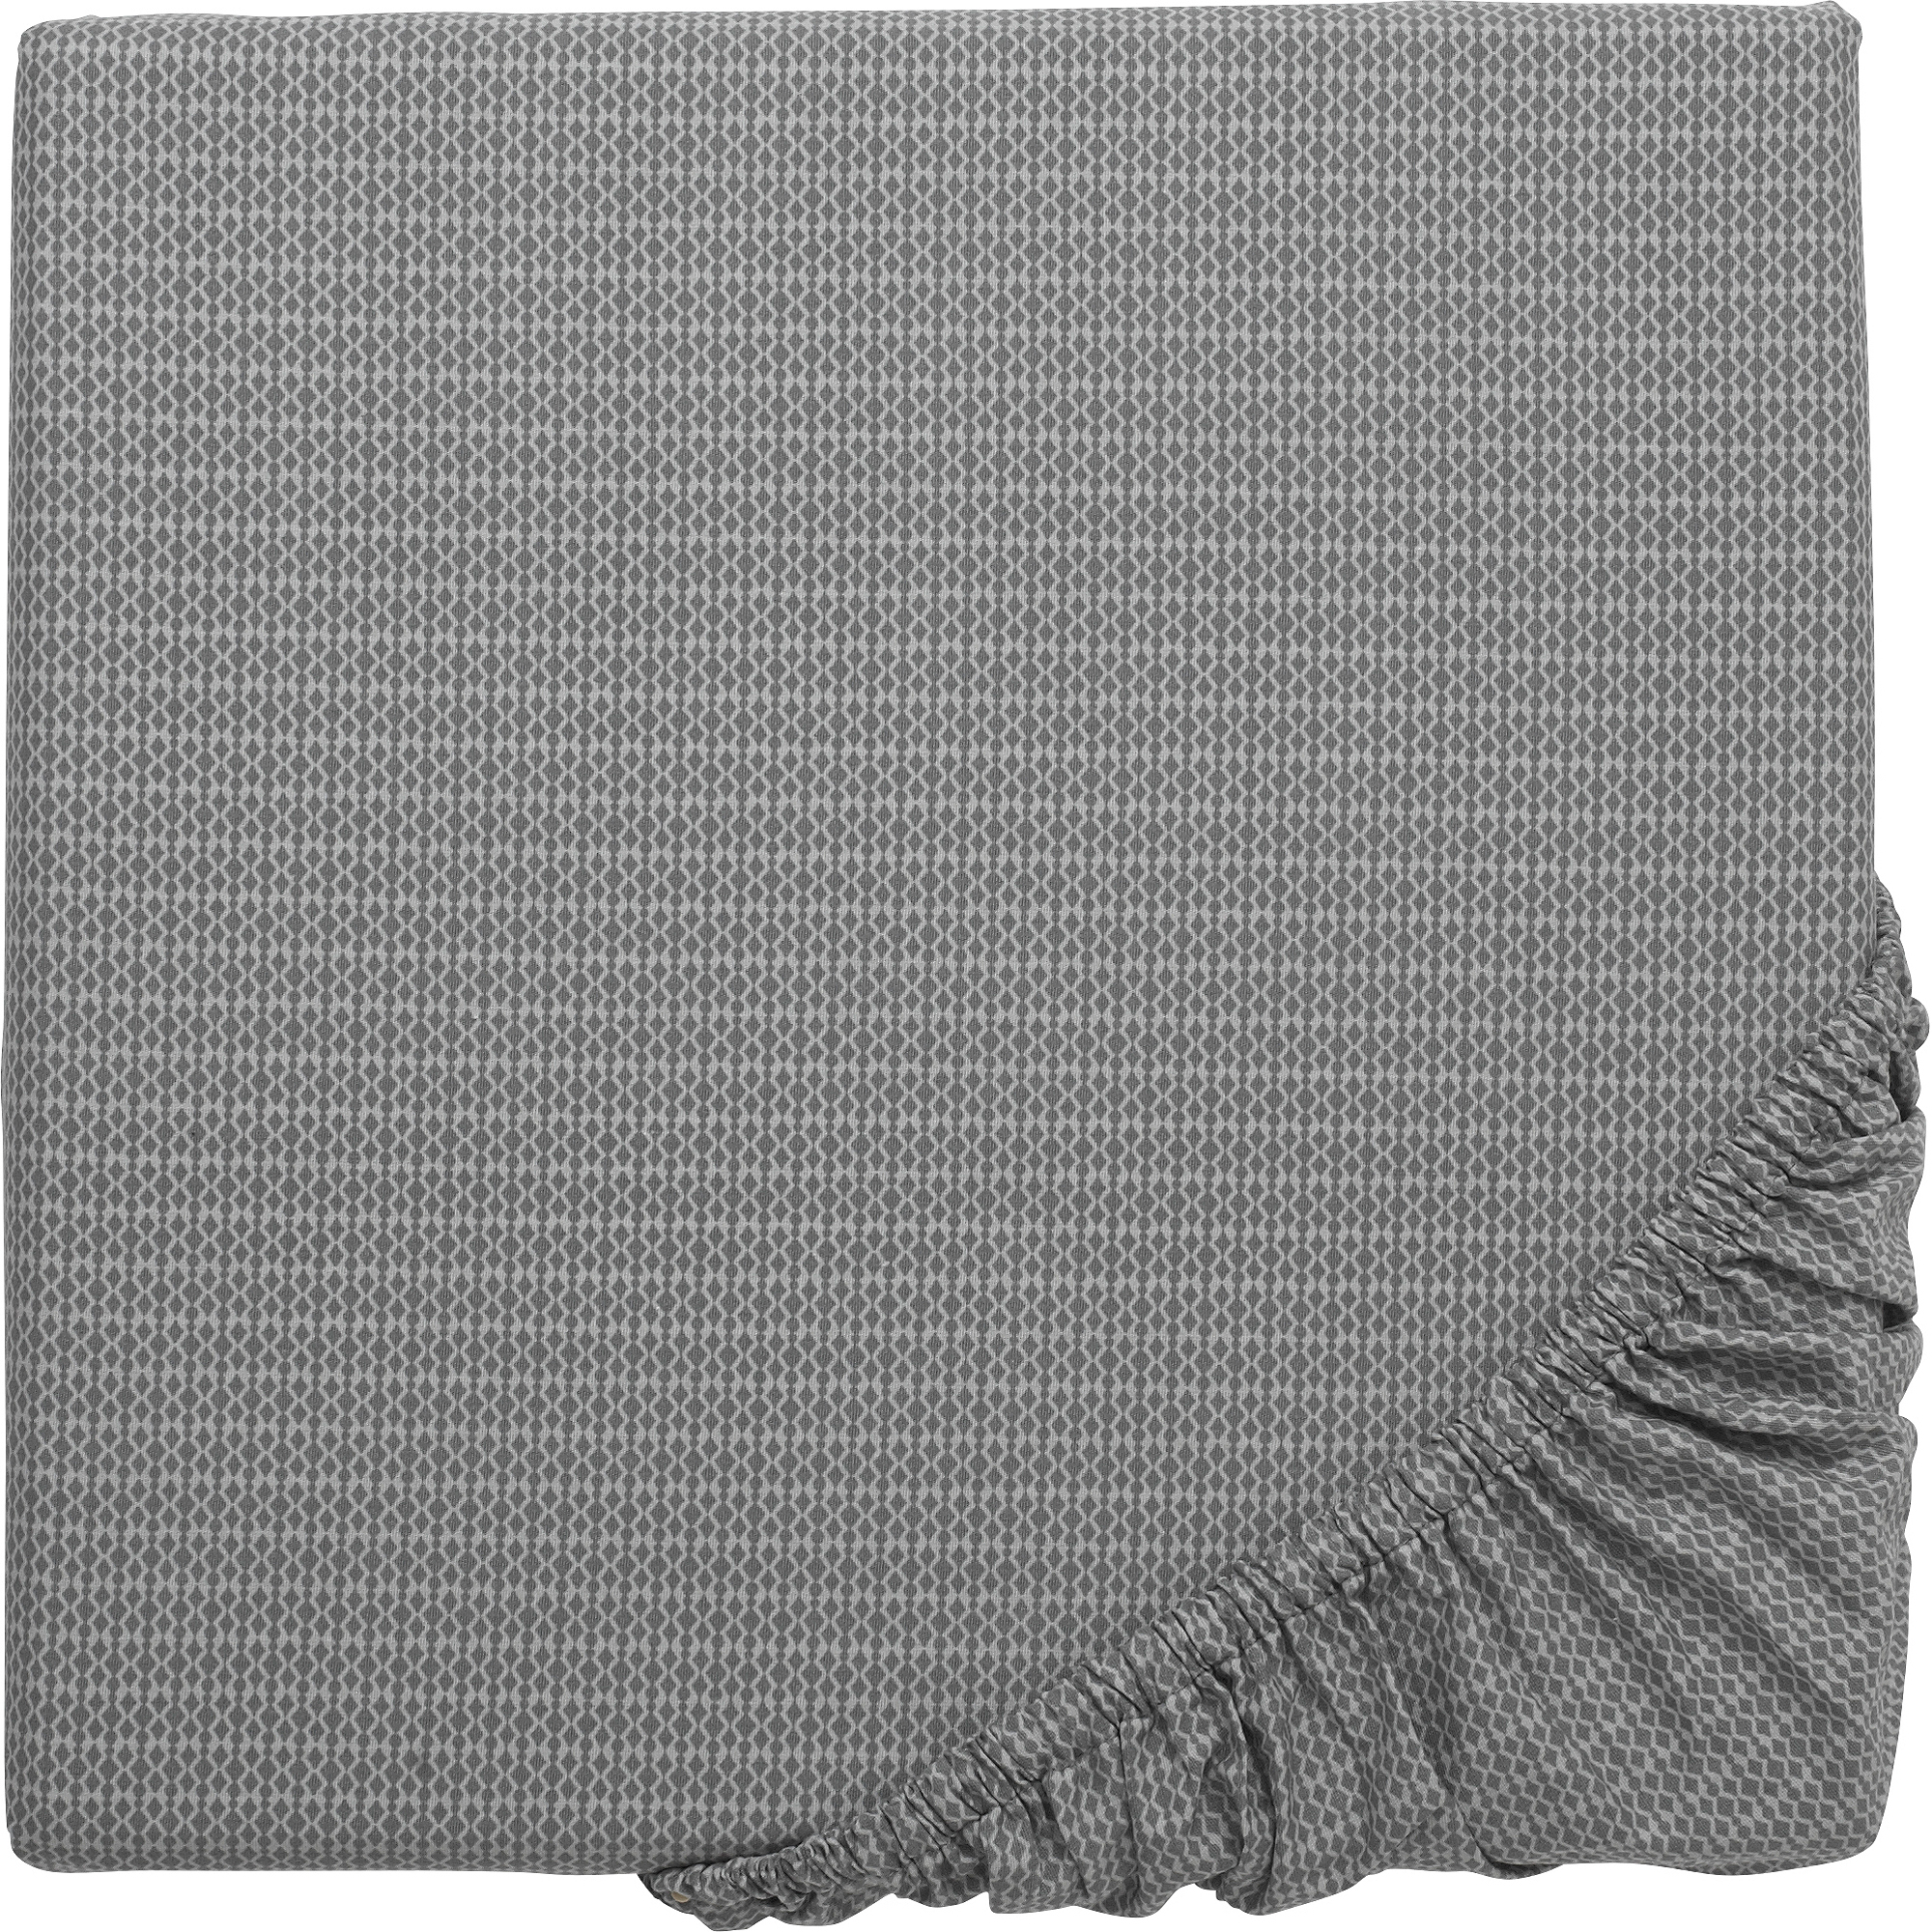 Mainstays Cotton/Polyester Fitted Sheet